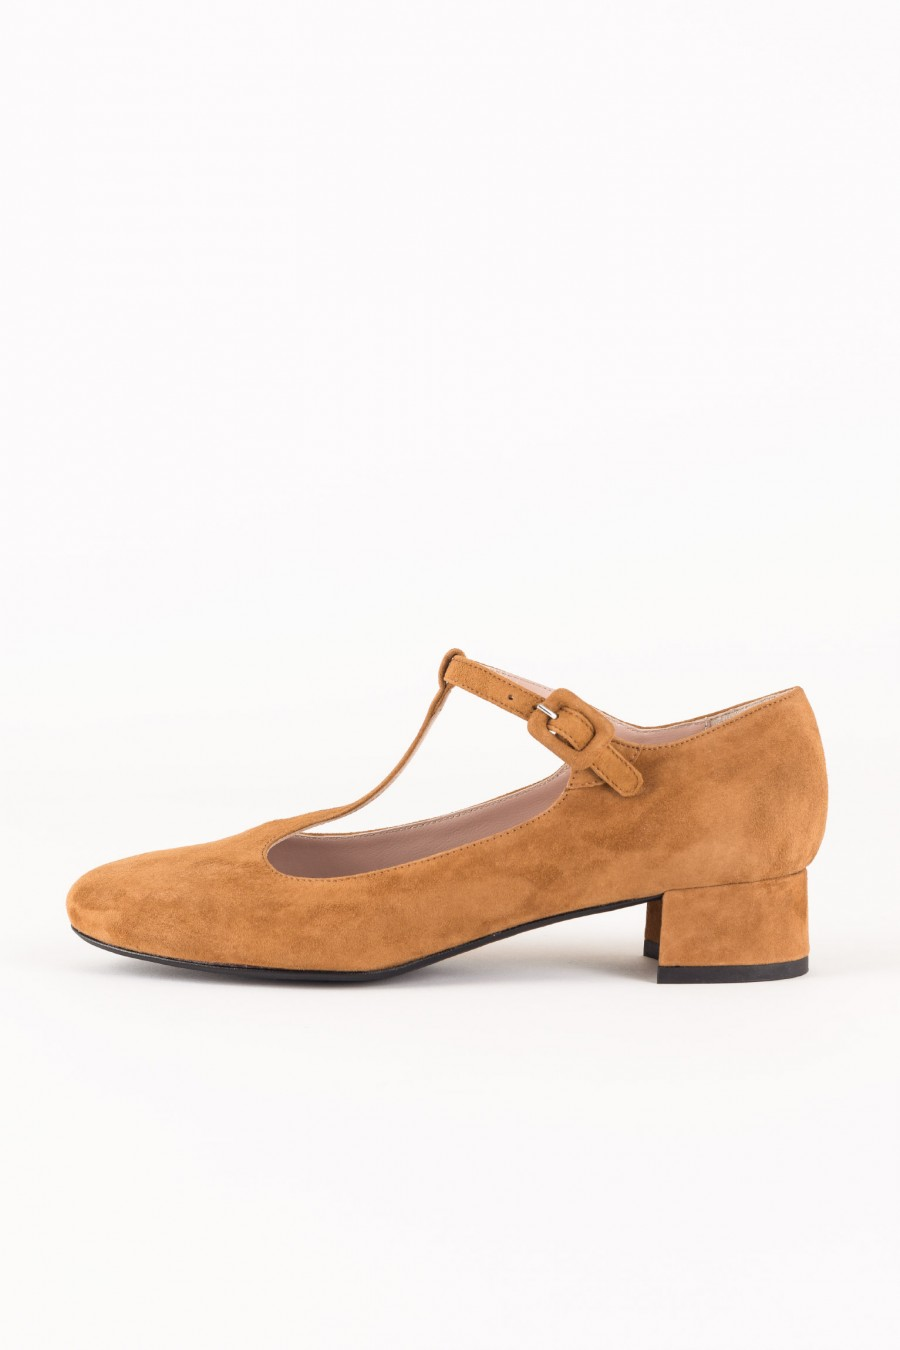 Brown suede t strap flats